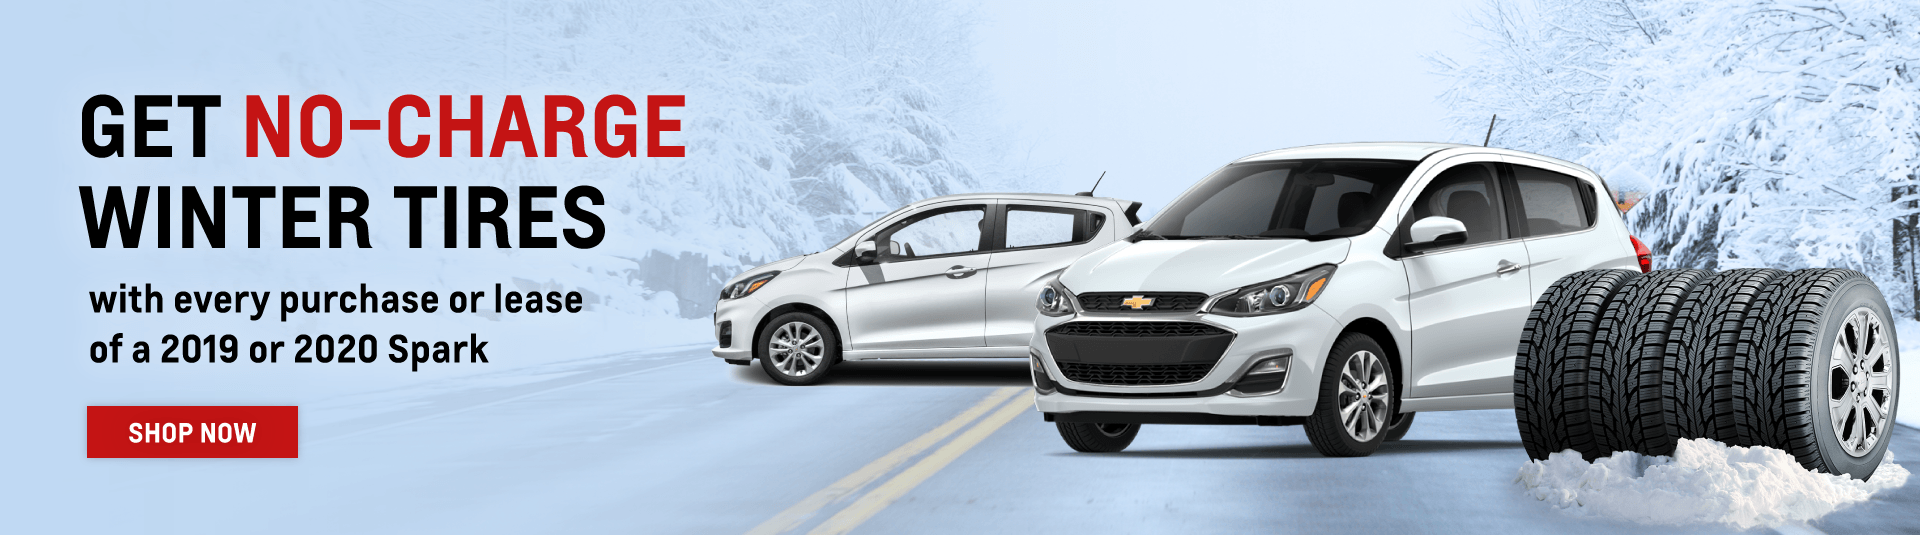 Chevrolet Spark Winter Tire Promotion in Etobicoke